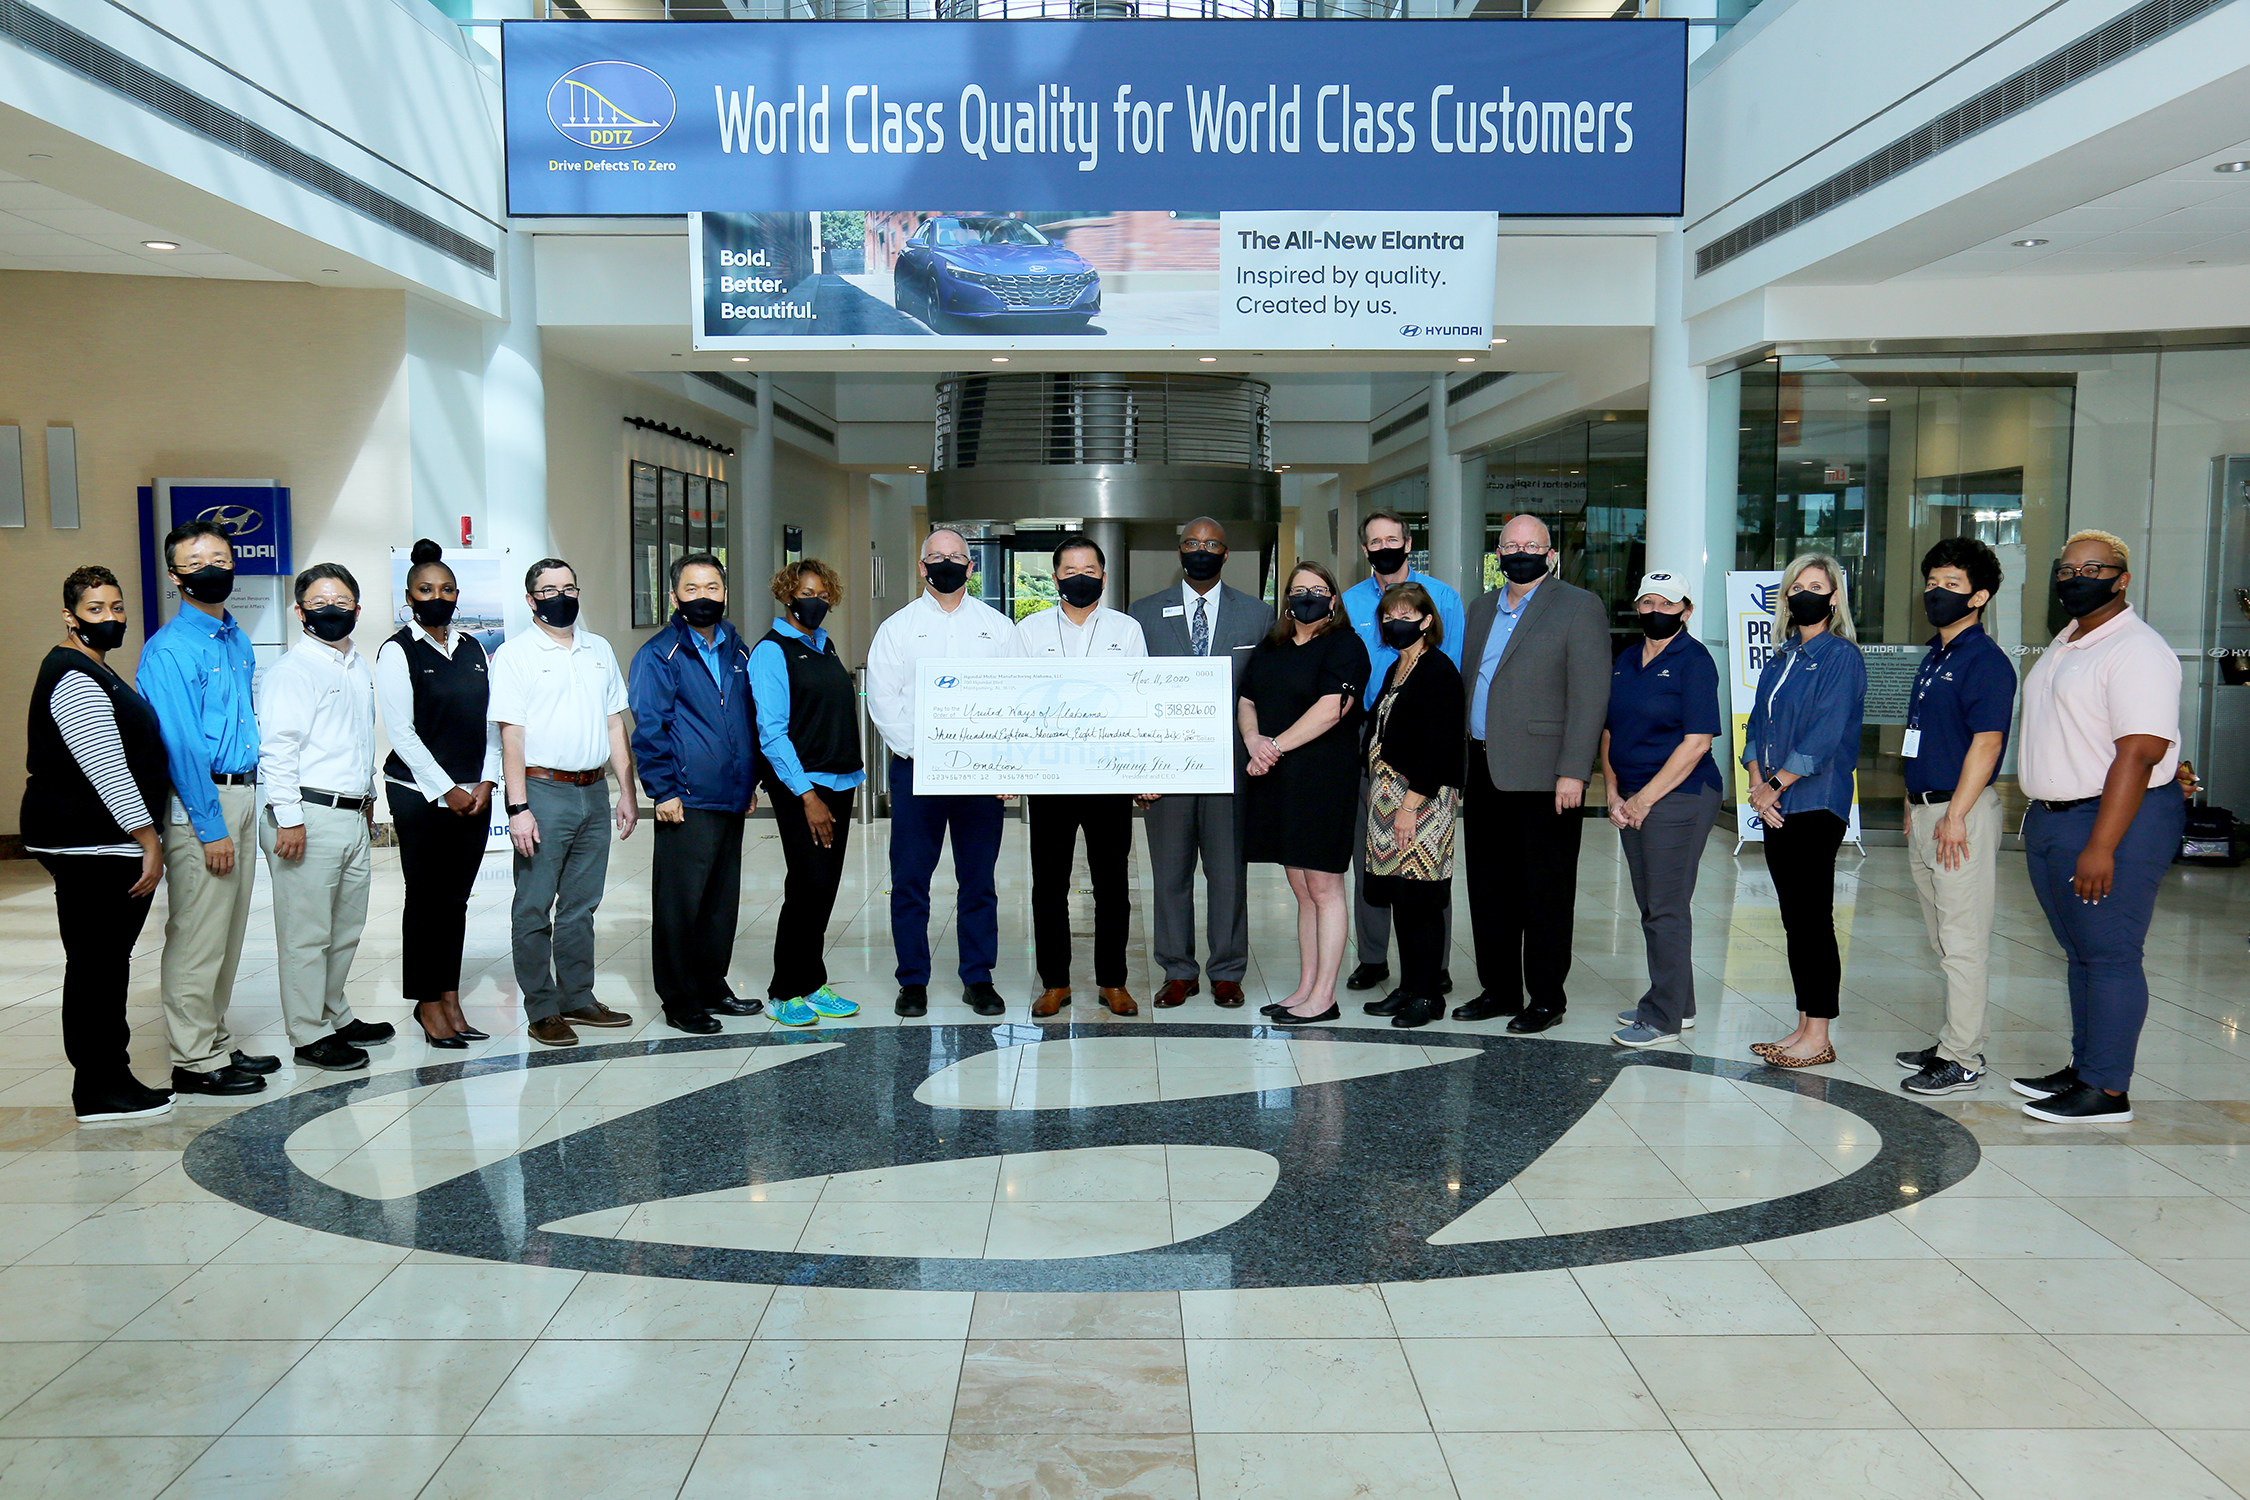 HMMA AND ITS TEAM MEMBERS PLEDGE MORE THAN $318,000 TO UNITED WAYS OF ALABAMA